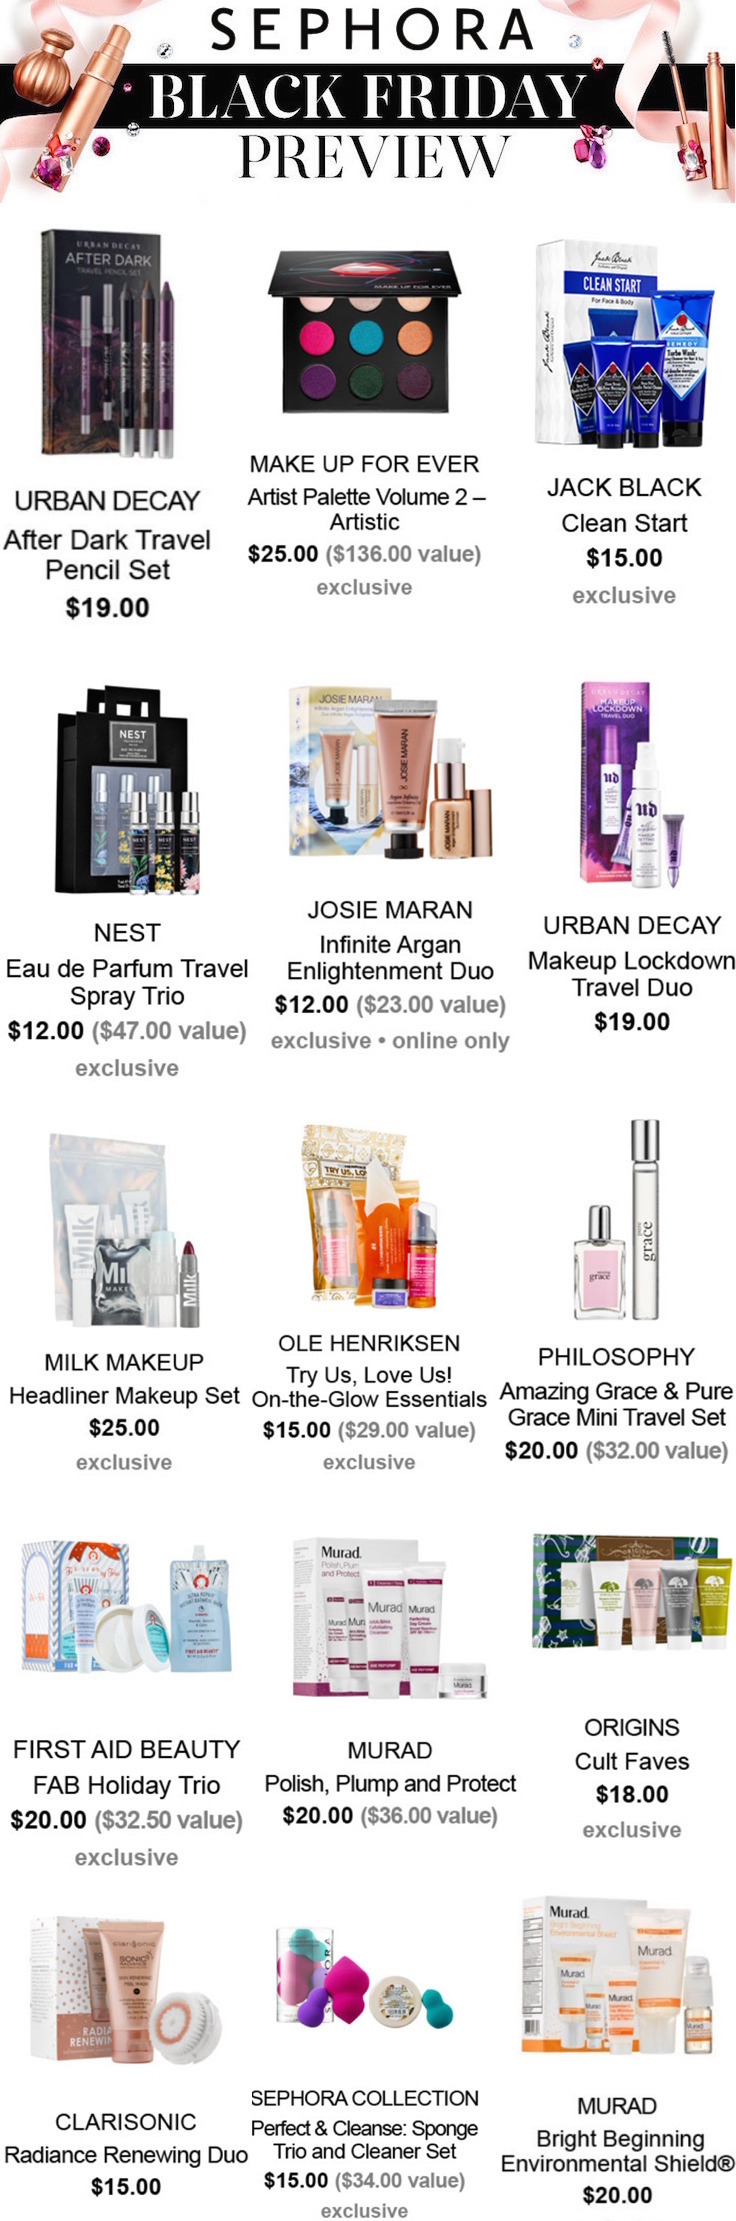 Sephora Black Friday 2016 Deals and Gift Sets